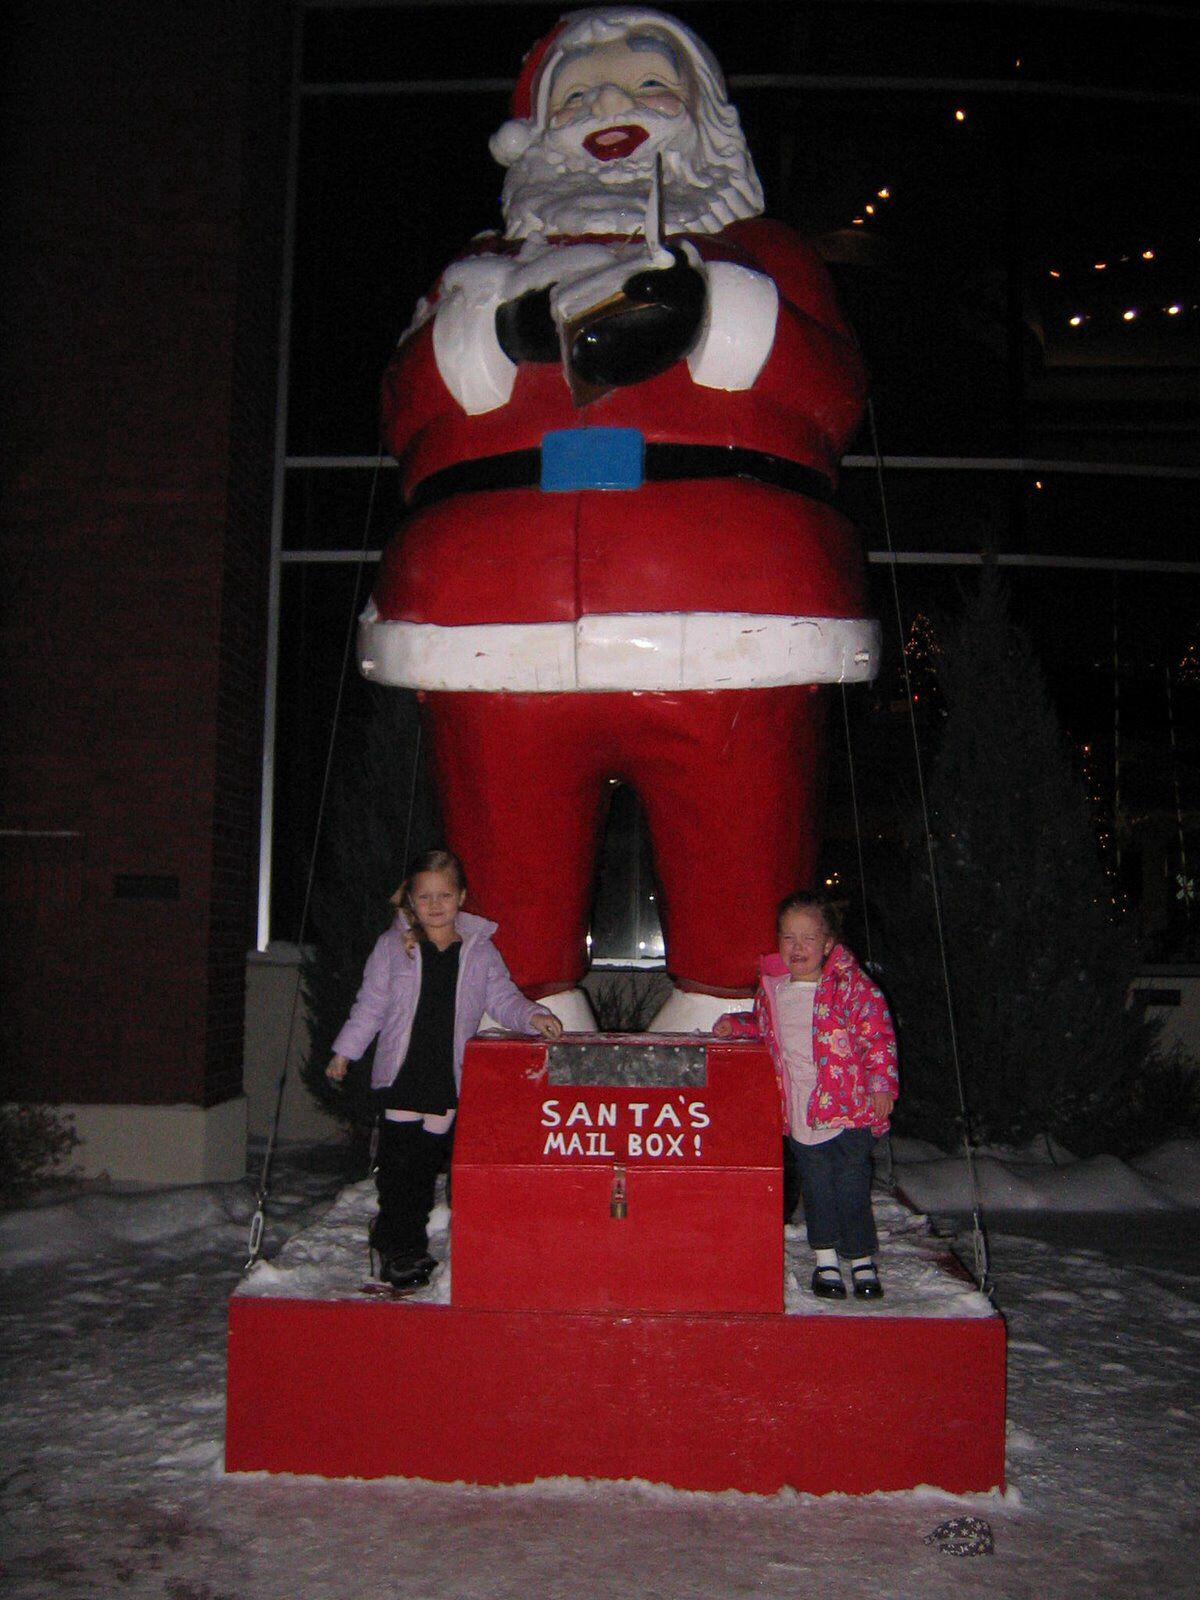 I mailed my letter to santa year after year in this santa mailbox in i mailed my letter to santa year after year in this santa mailbox in idaho falls spiritdancerdesigns Choice Image